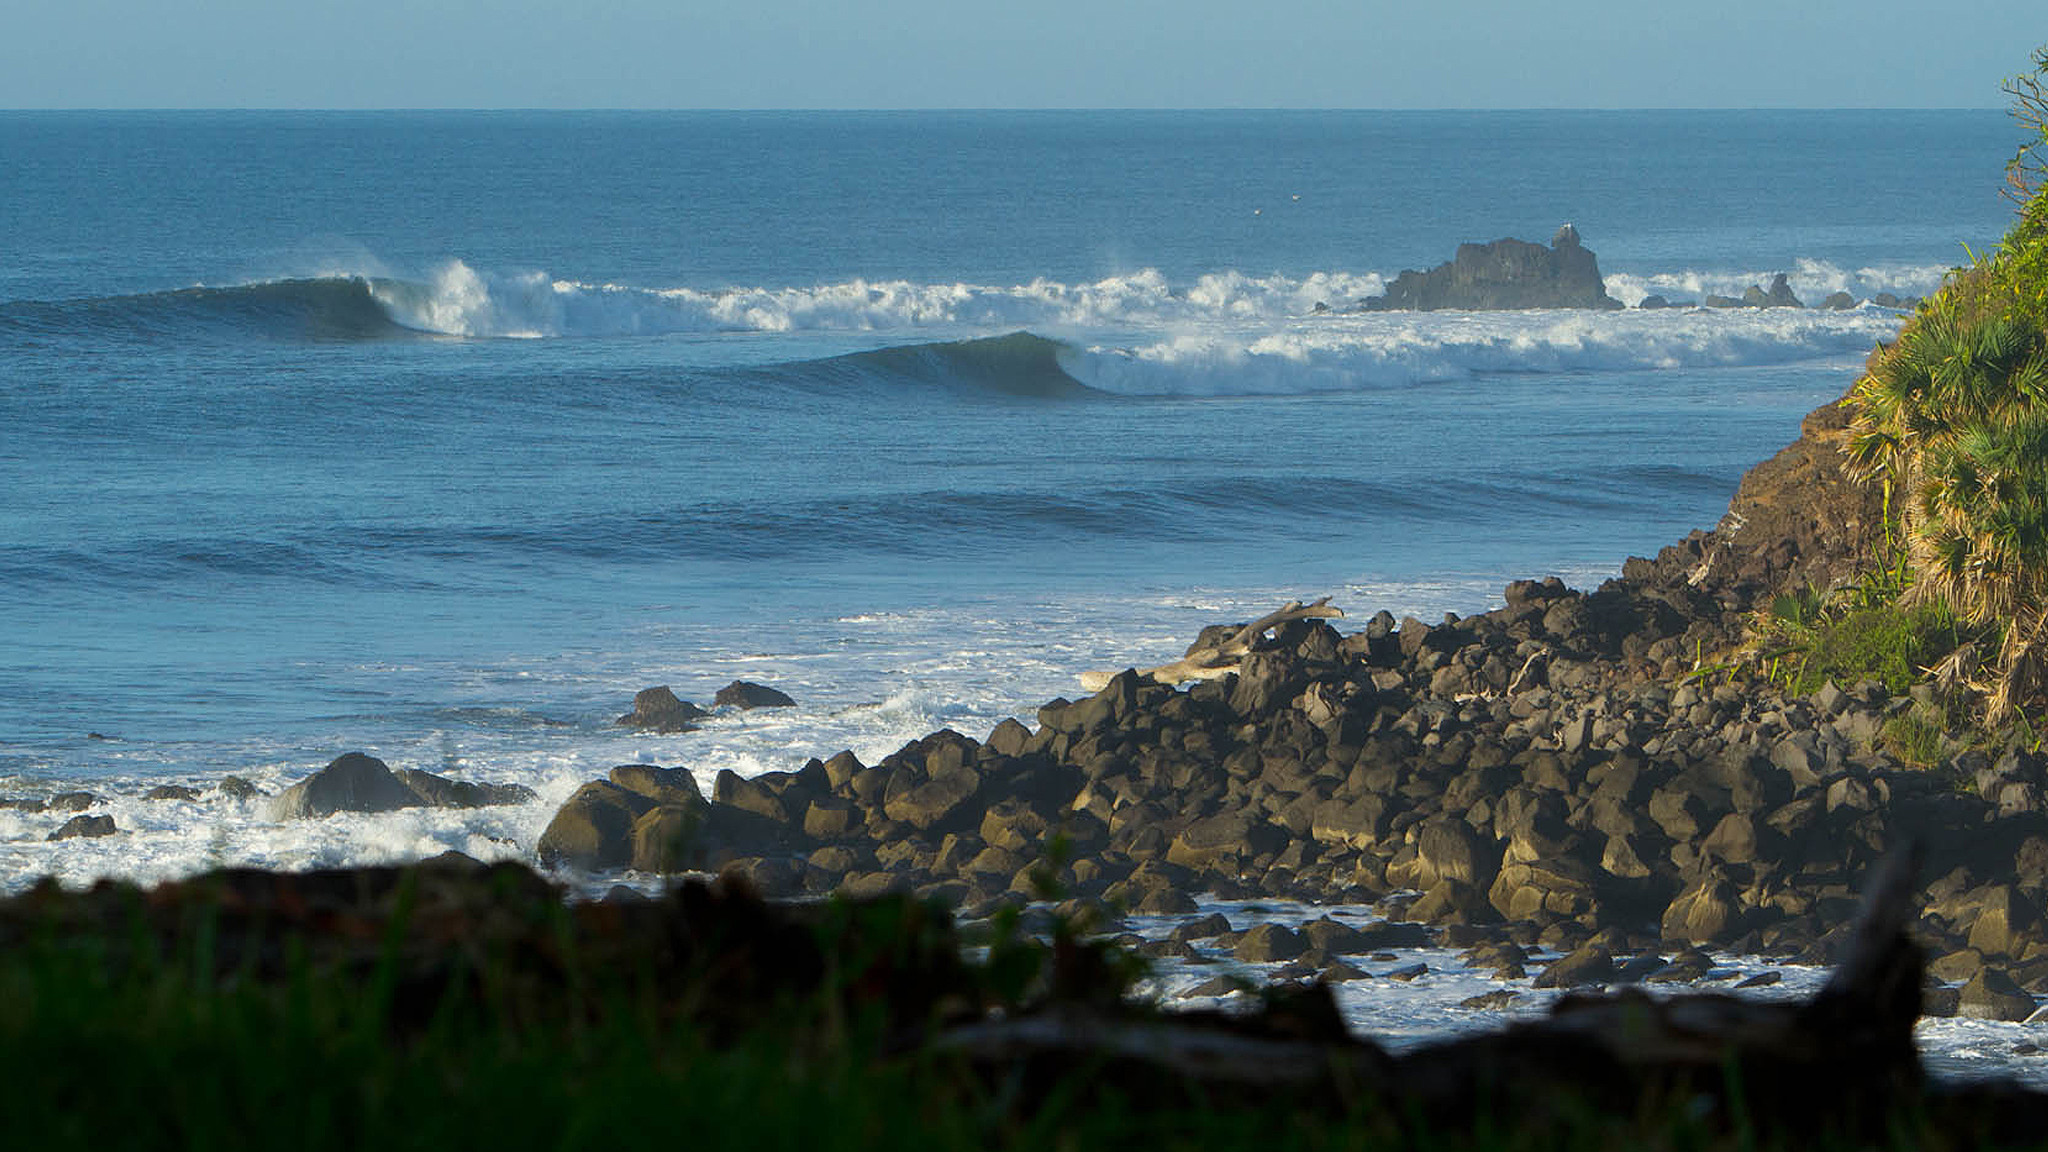 2048x1152 Trippin' through El Salvador